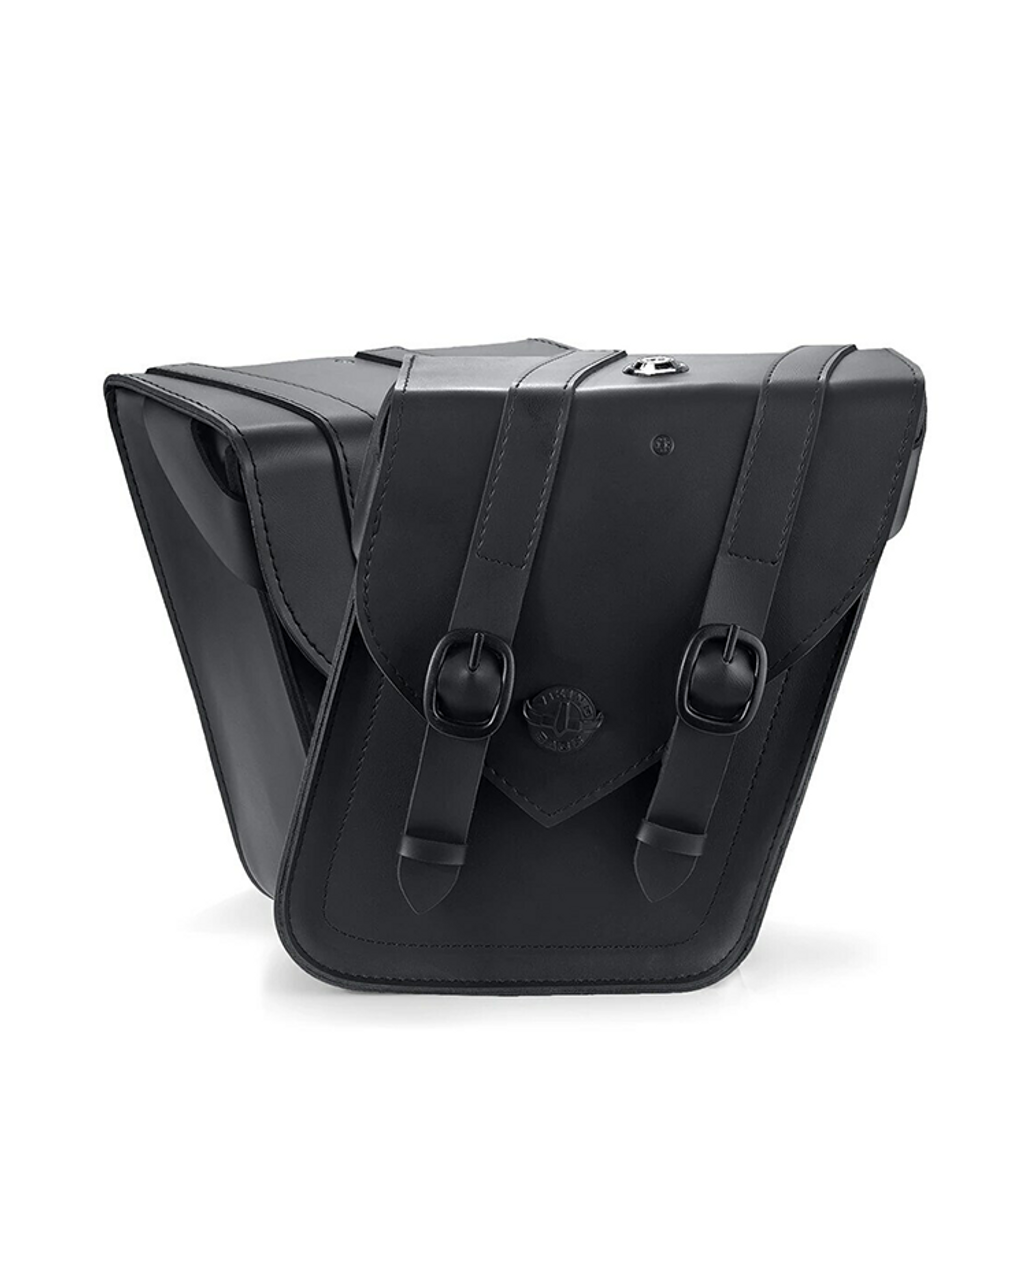 Viking Dark Age Compact Strapped Leather Motorcycle Saddlebags For Sportster Forty Eight 48 Both View